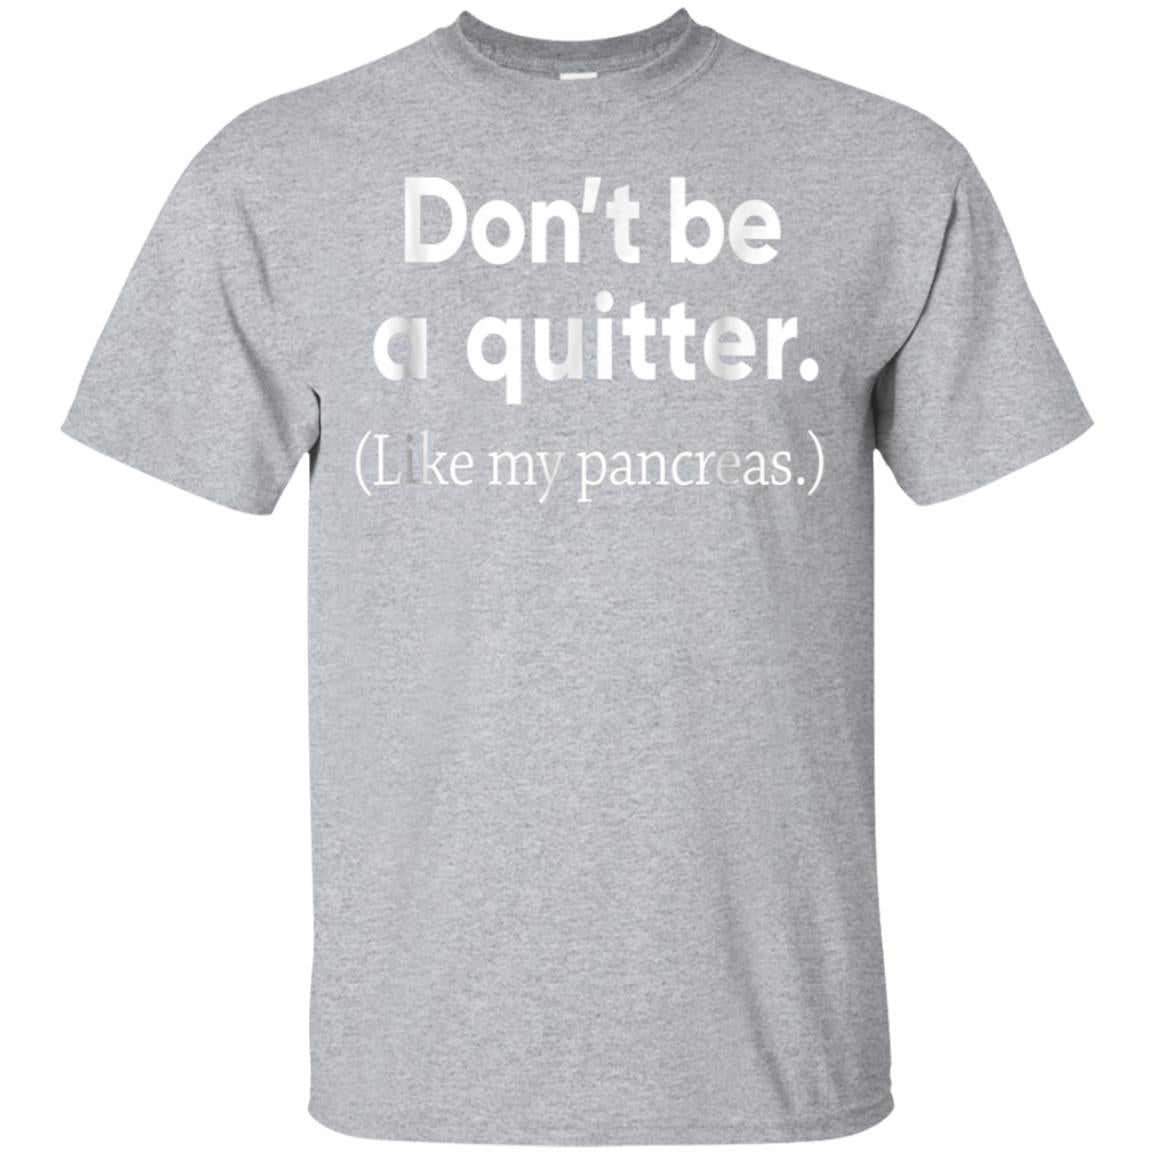 Funny Type 1 Diabetes Shirt - Don't Be A Quitter T-Shirt 99promocode